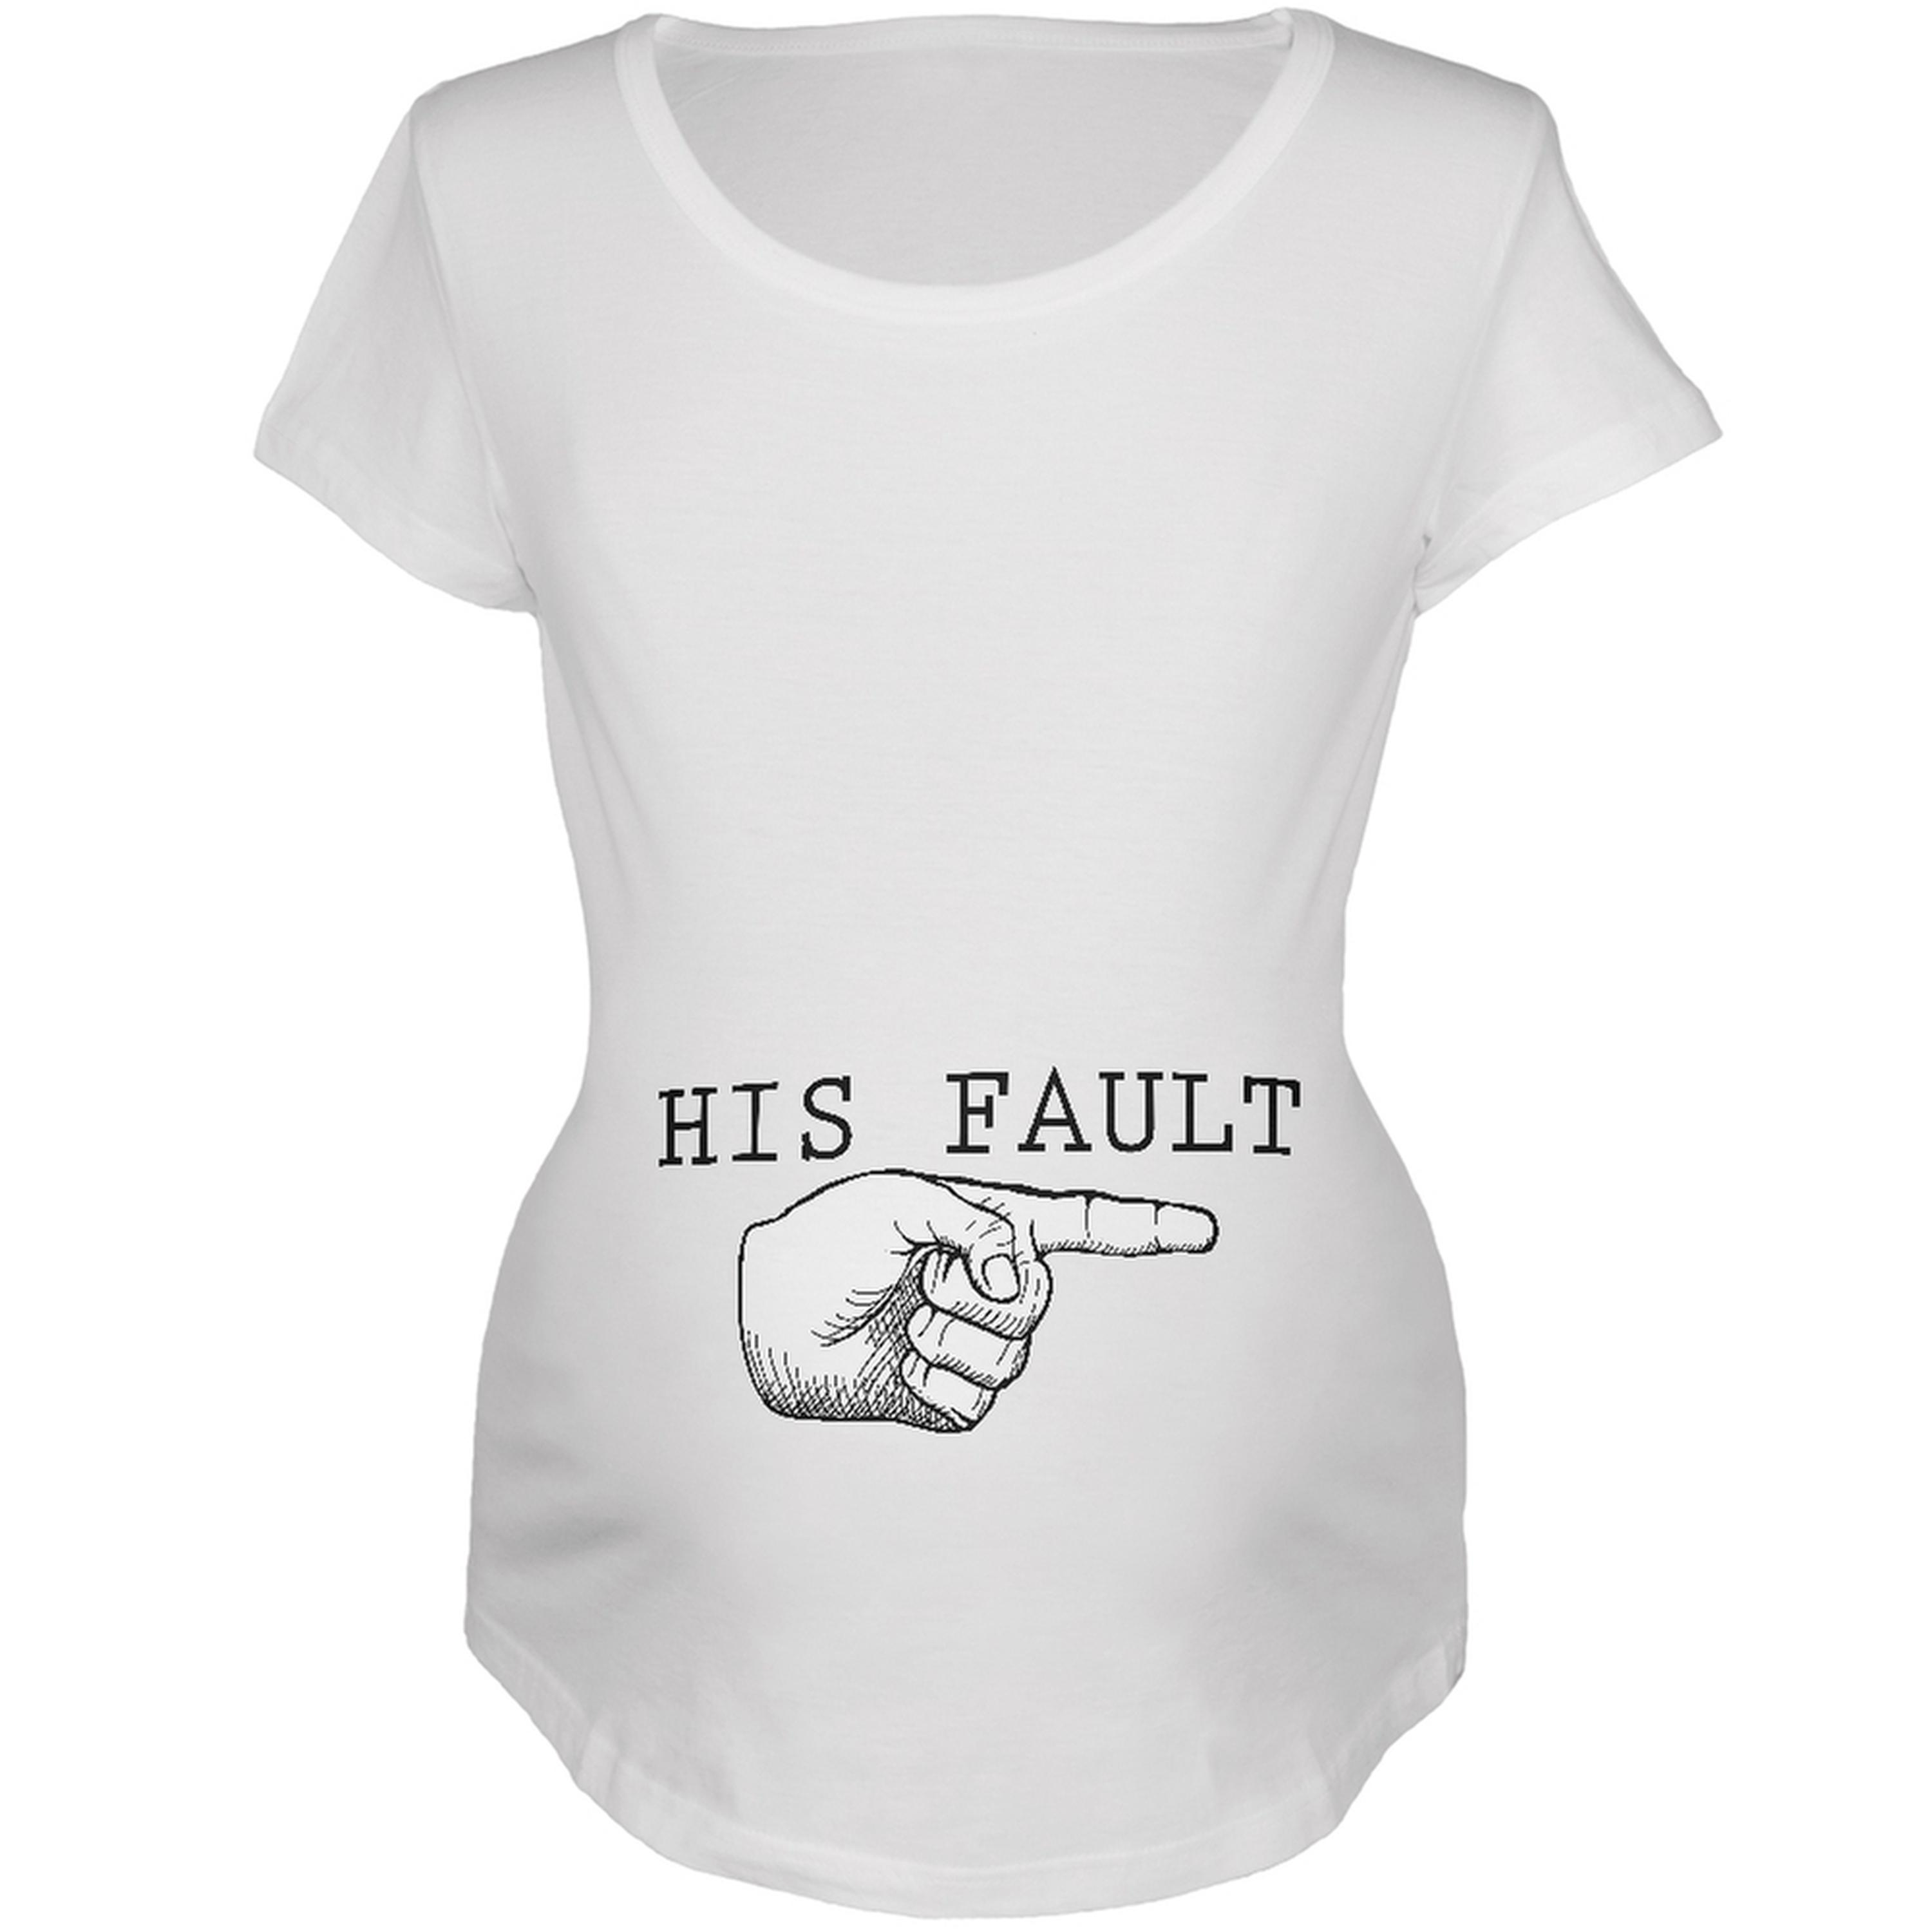 His Fault White Maternity Soft T-Shirt by